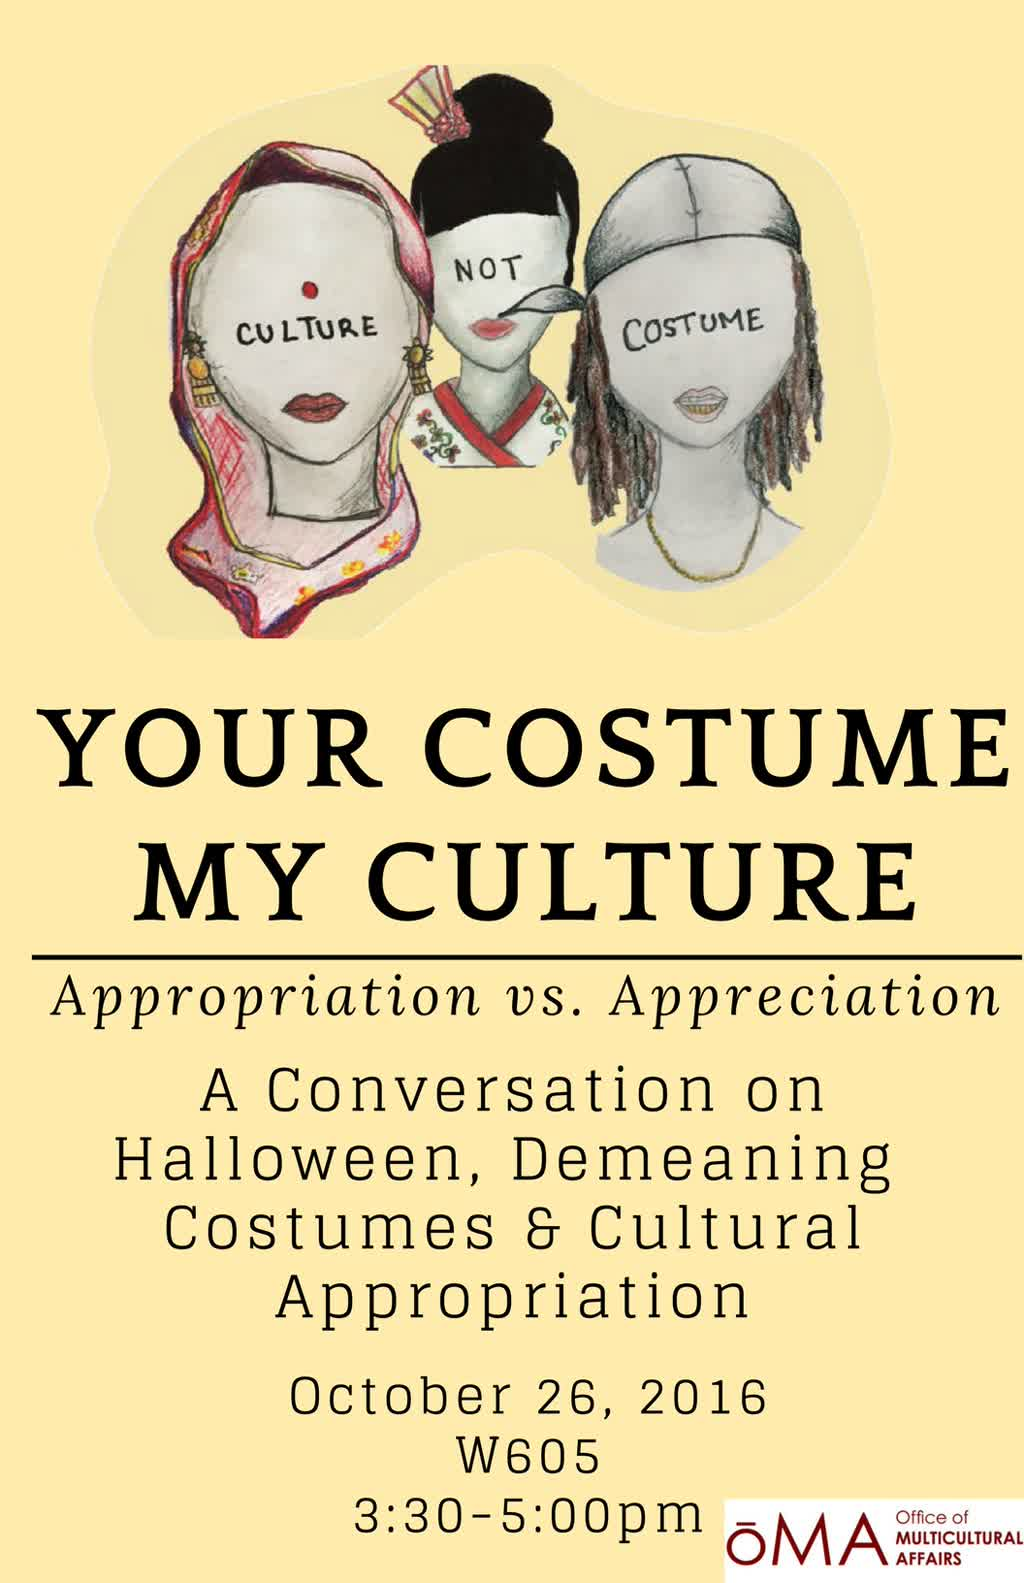 Information regarding Your Costume My Culture: Appropriation vs. Appreciation is as follows Start date is October 19 2017 and End Date is October 26 2017 and File is Browse and File Name is UNIVERSITY-PRESS_comp.jpg and Group Name is Office of Multicultural Affairs and Name is Raziyah Eure and Email is re30776n@pace.edu and Affiliation is recognized student organization and Panel is Side and Name of Ad/Event is Your Costume My Culture: Appropriation vs. Appreciation and